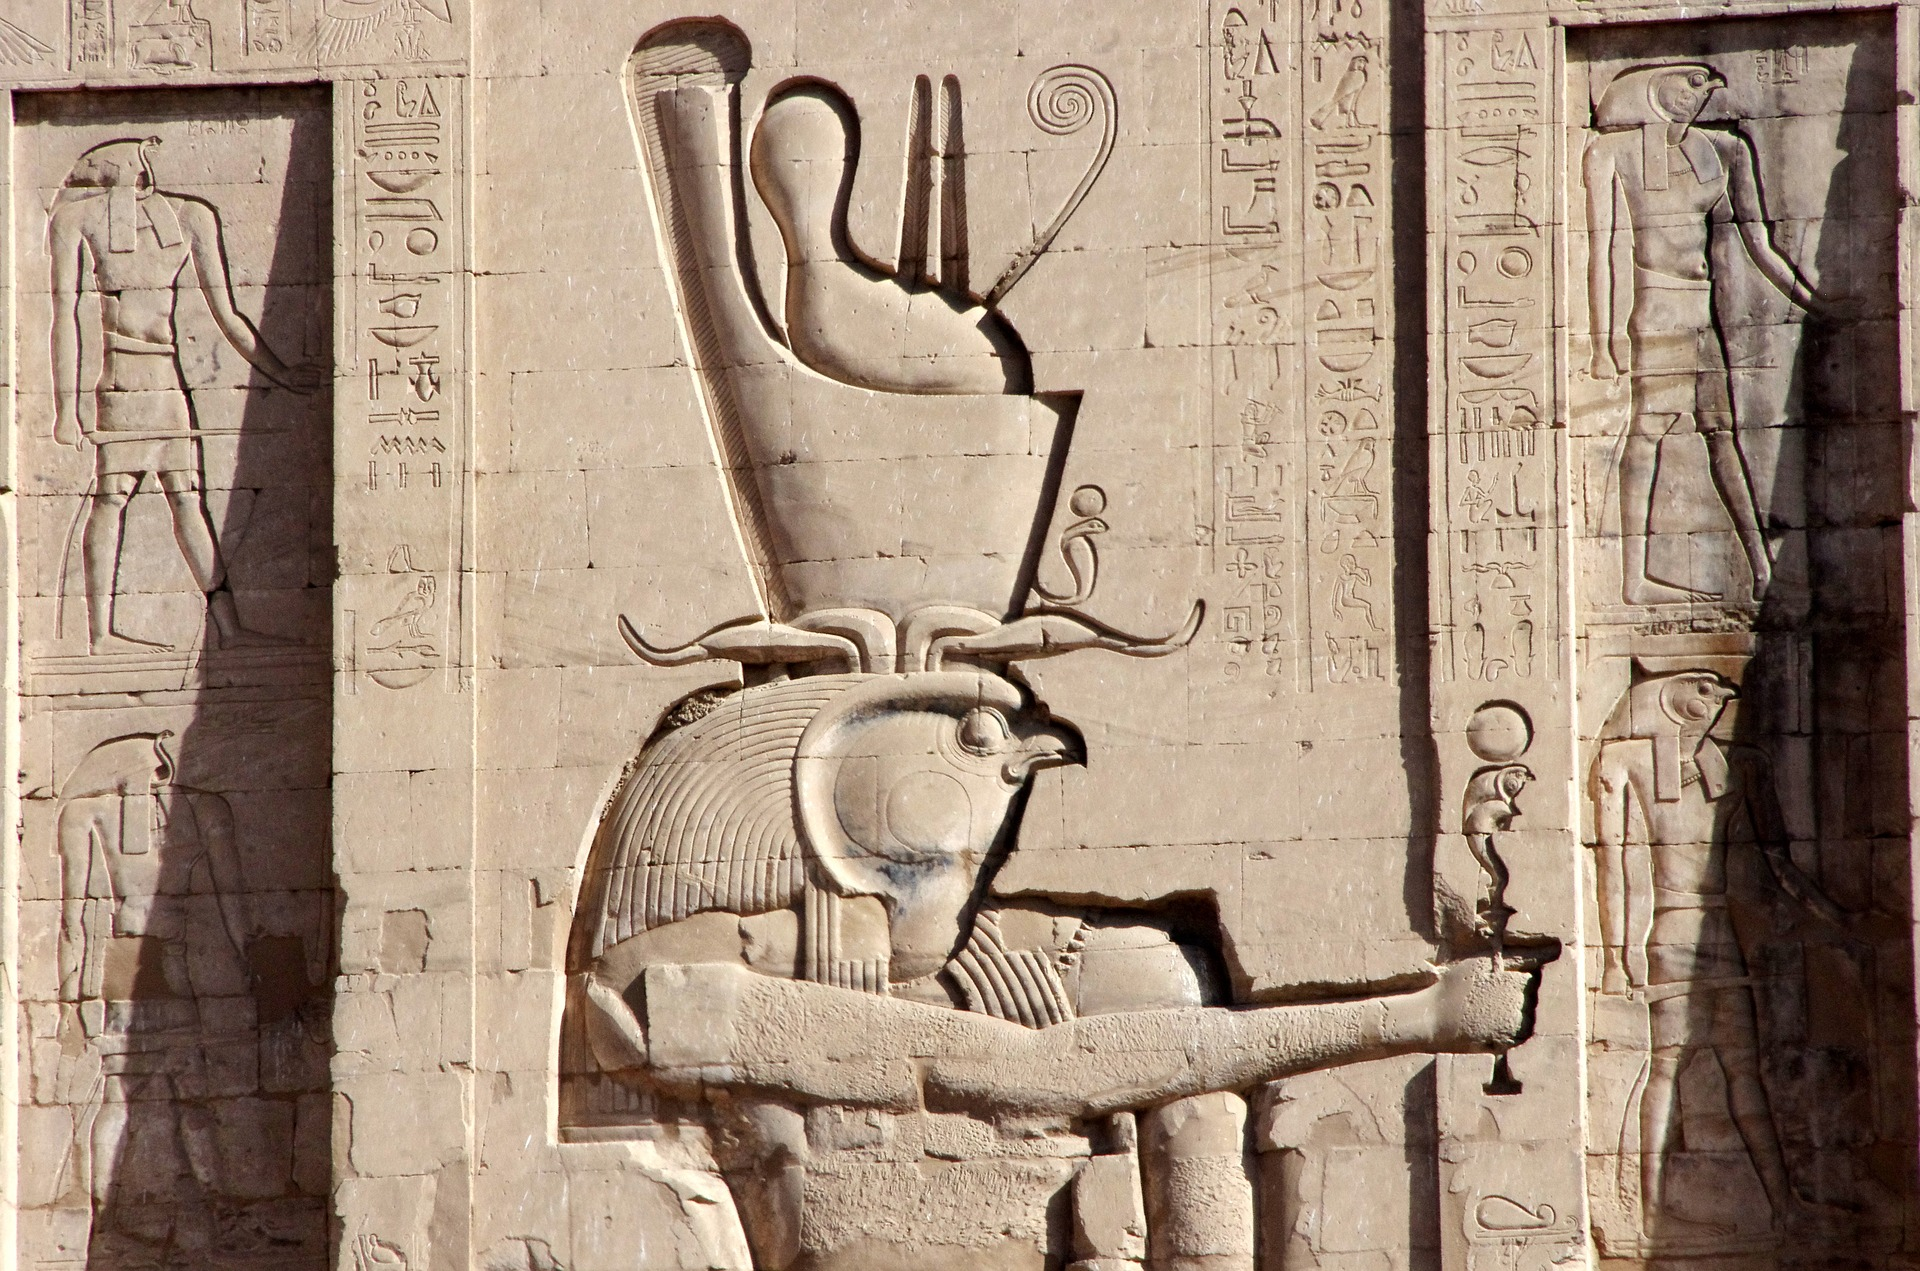 free-egypt-solo-teentures-being